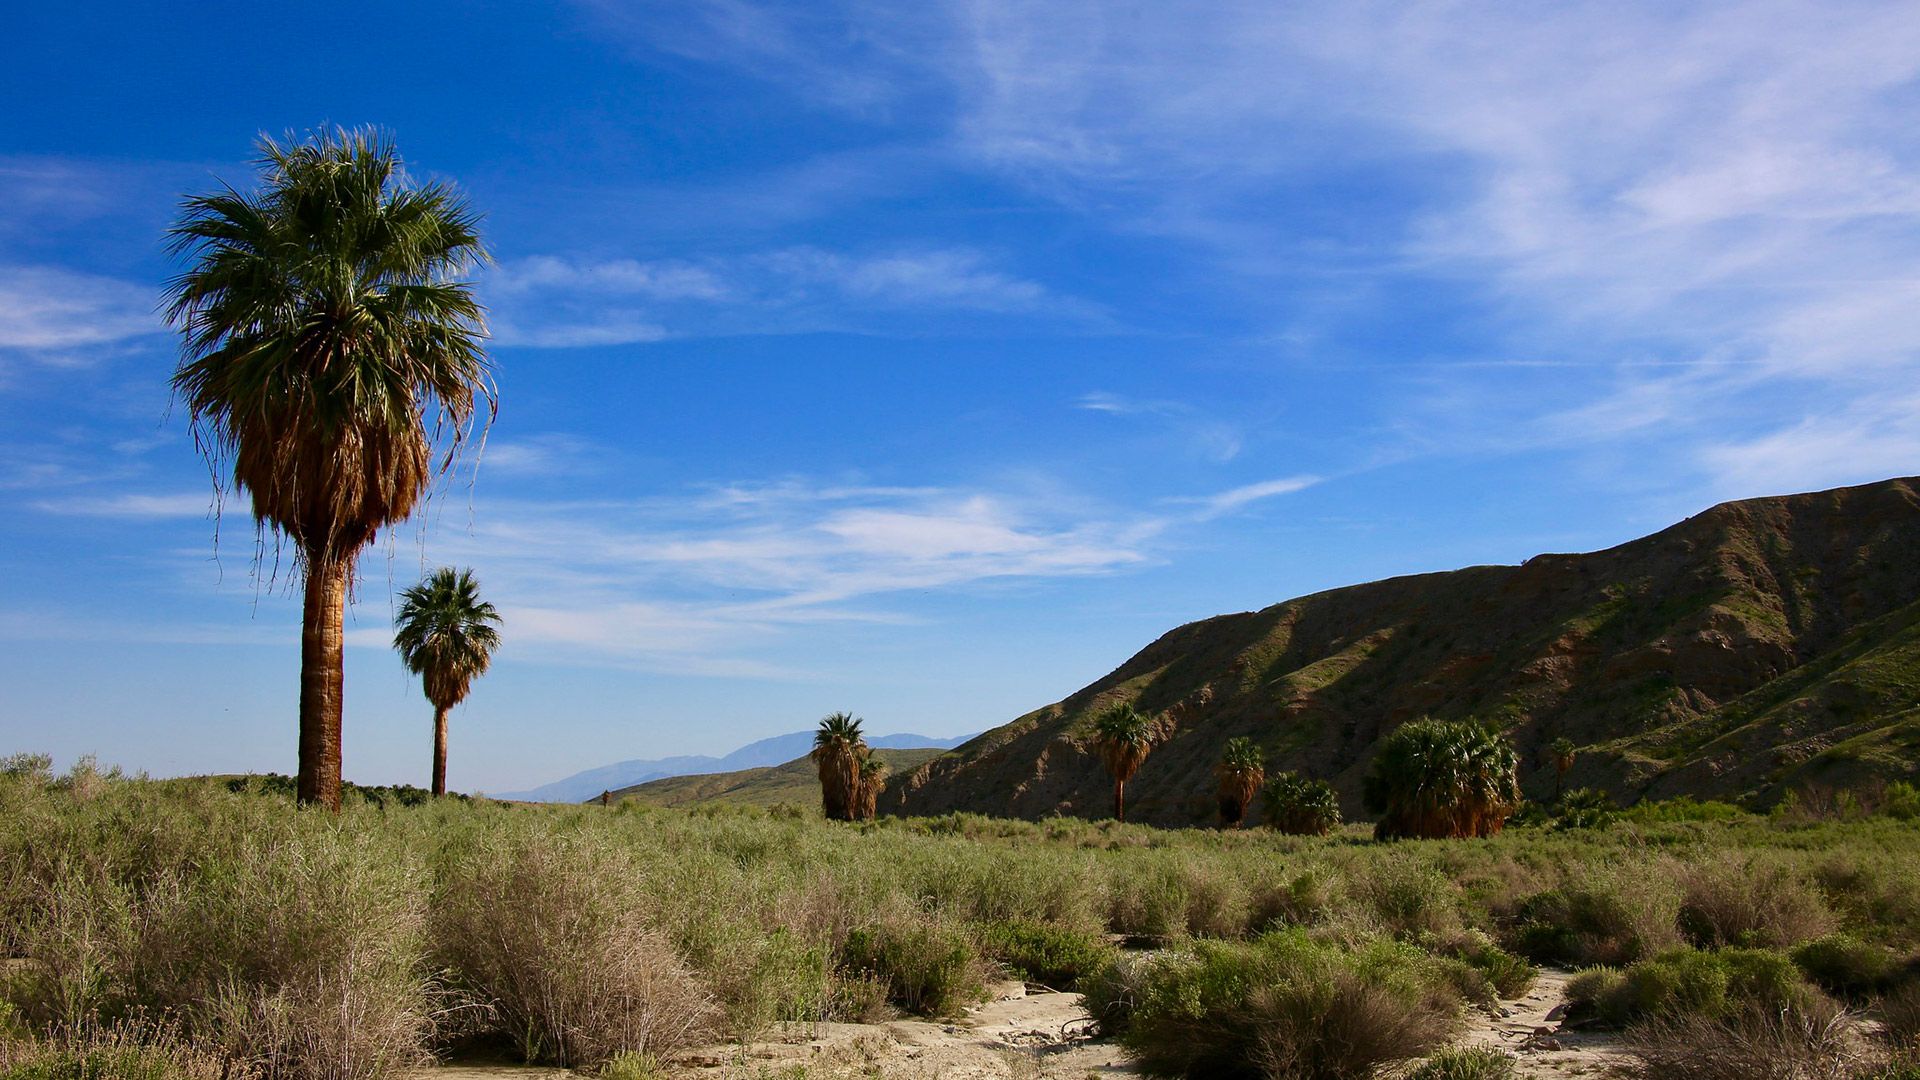 solitary palm trees at Thousand Palms Oasis